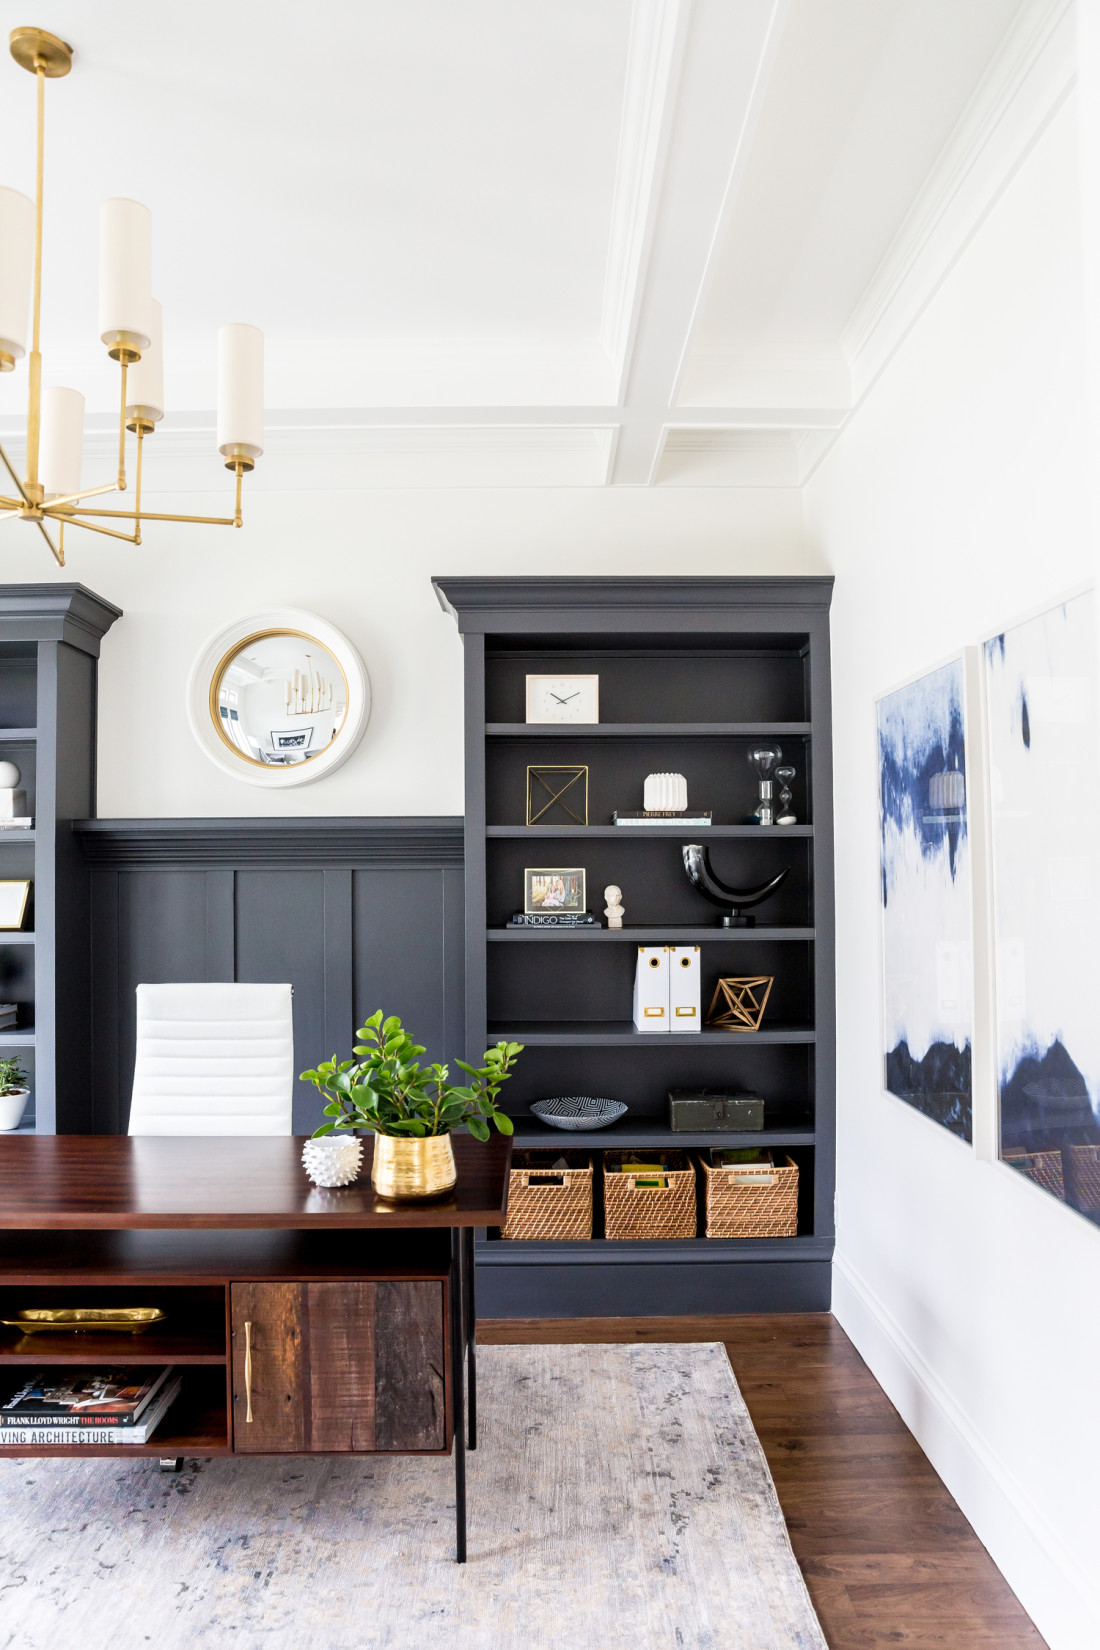 benjamin moore blue paint color options - Paint Color Options